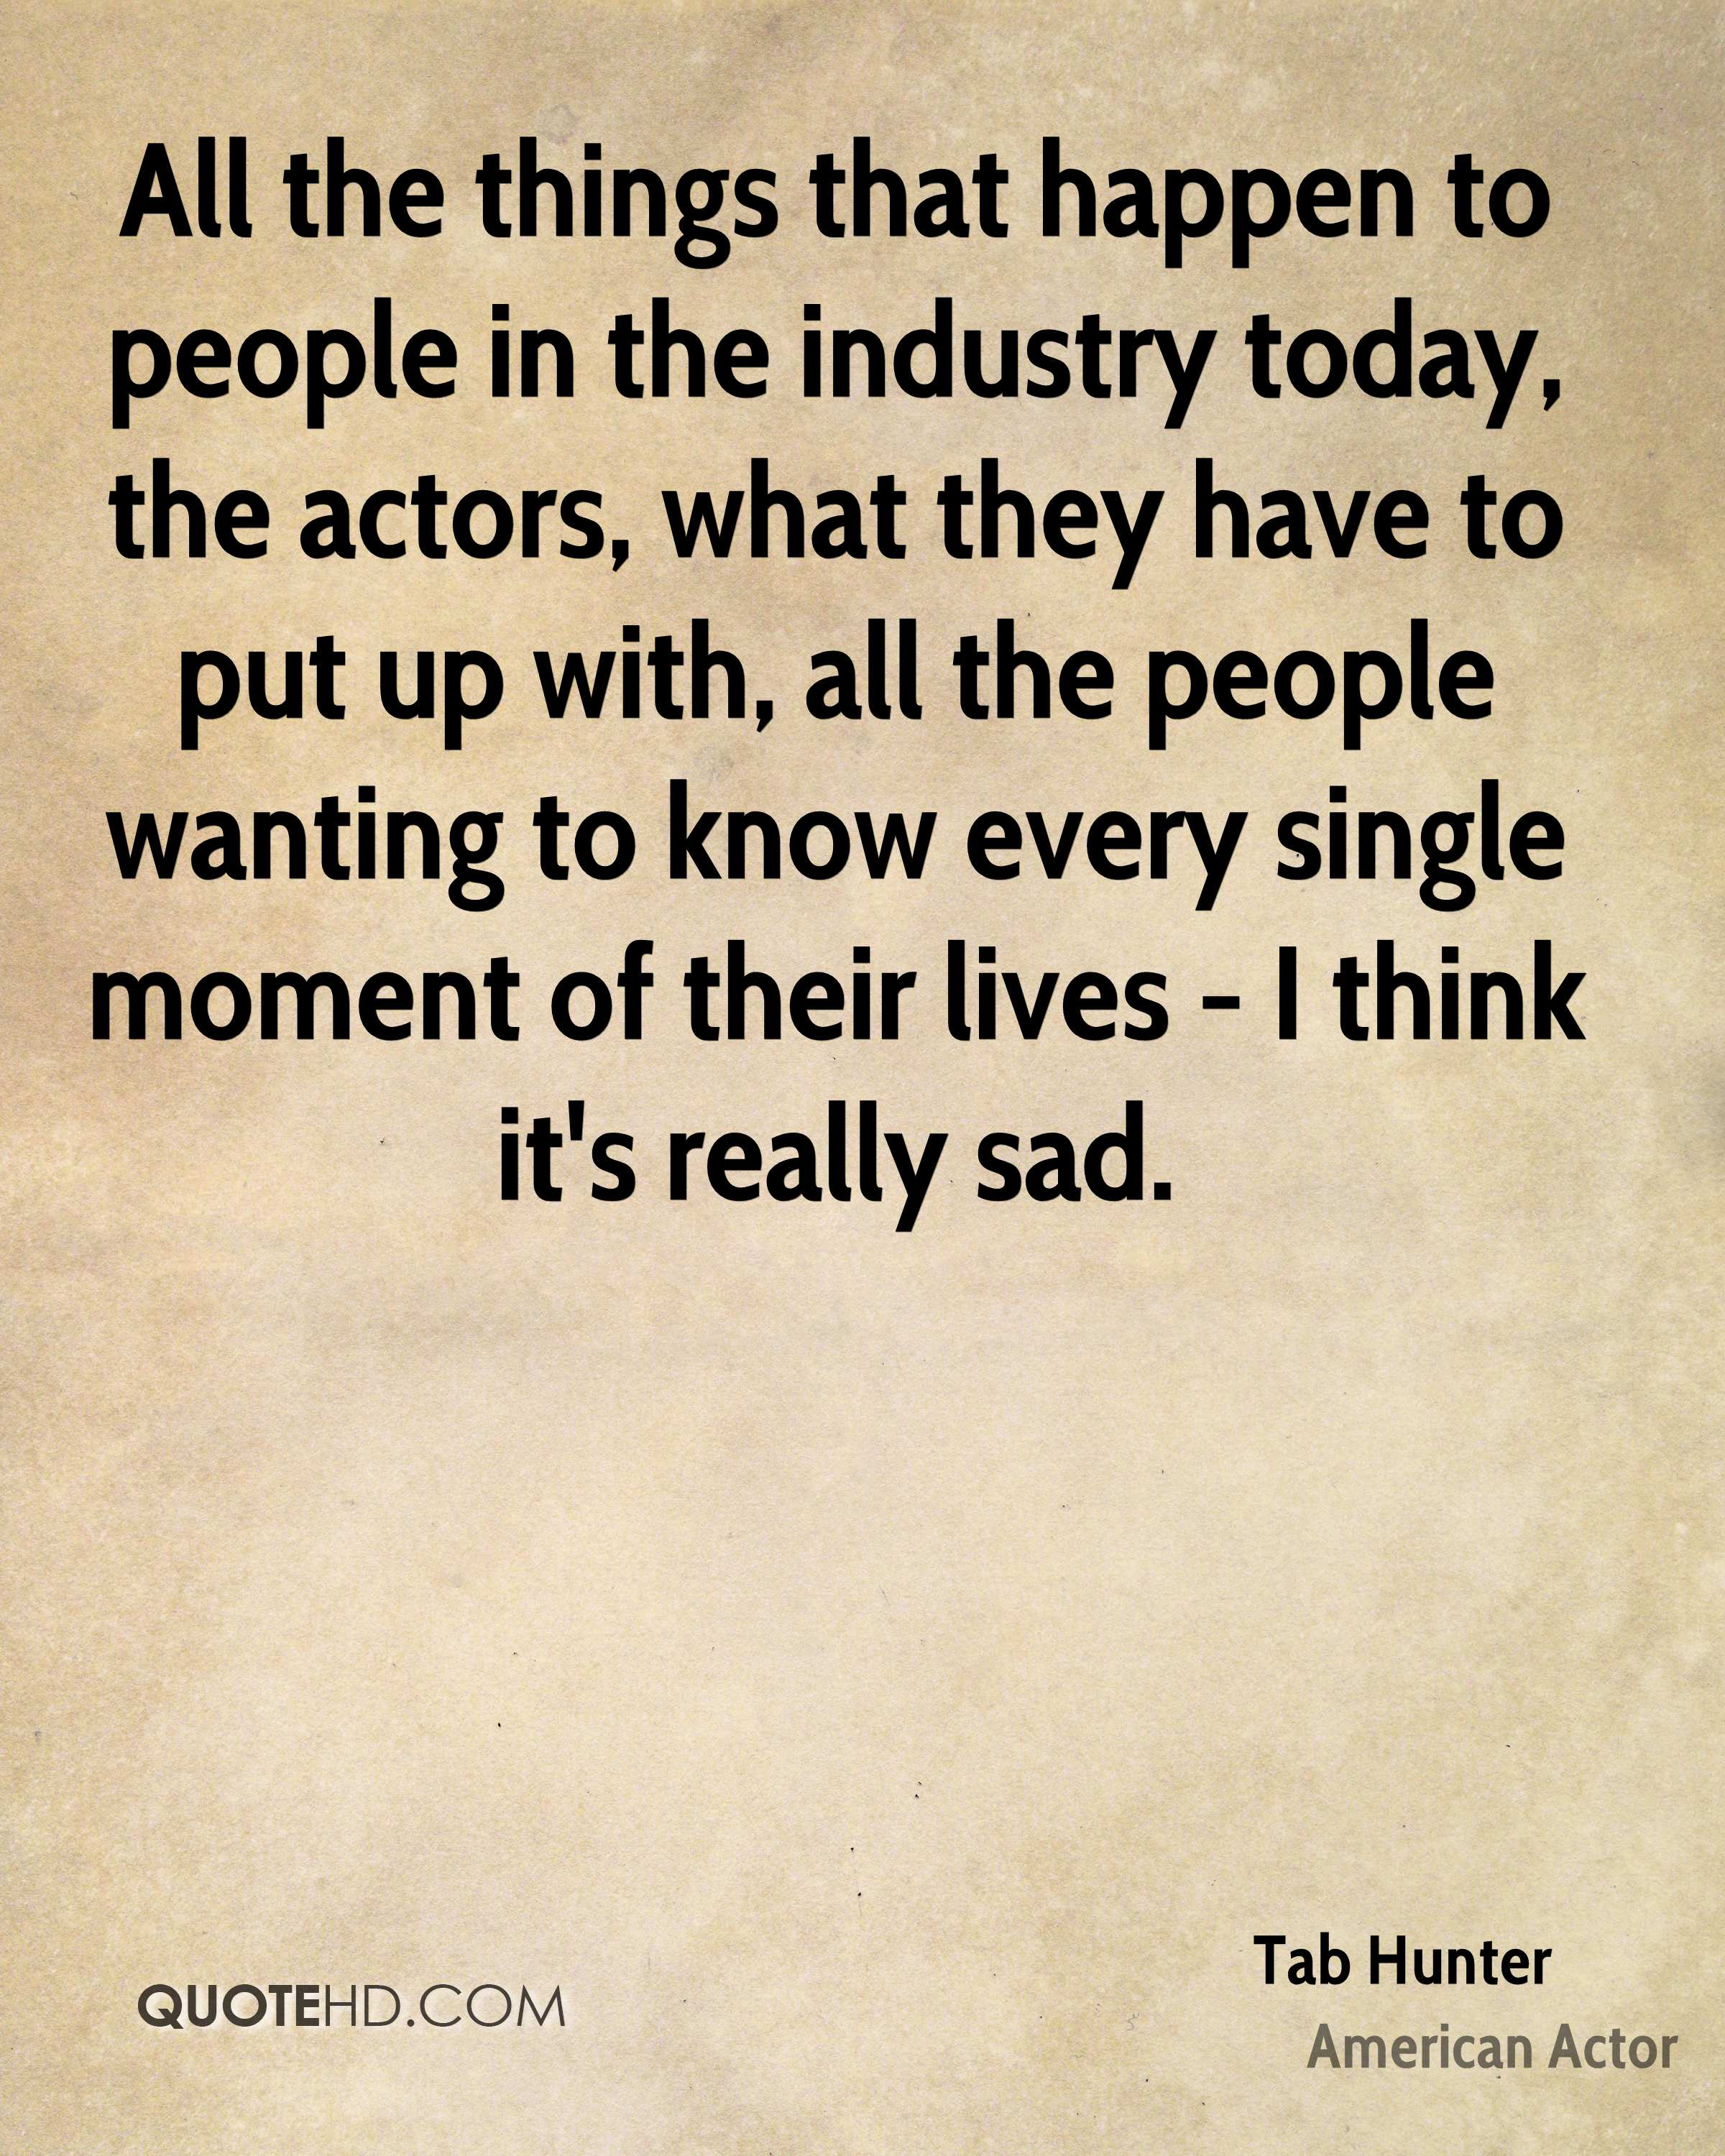 All the things that happen to people in the industry today, the actors, what they have to put up with, all the people wanting to know every single moment of their lives - I think it's really sad.